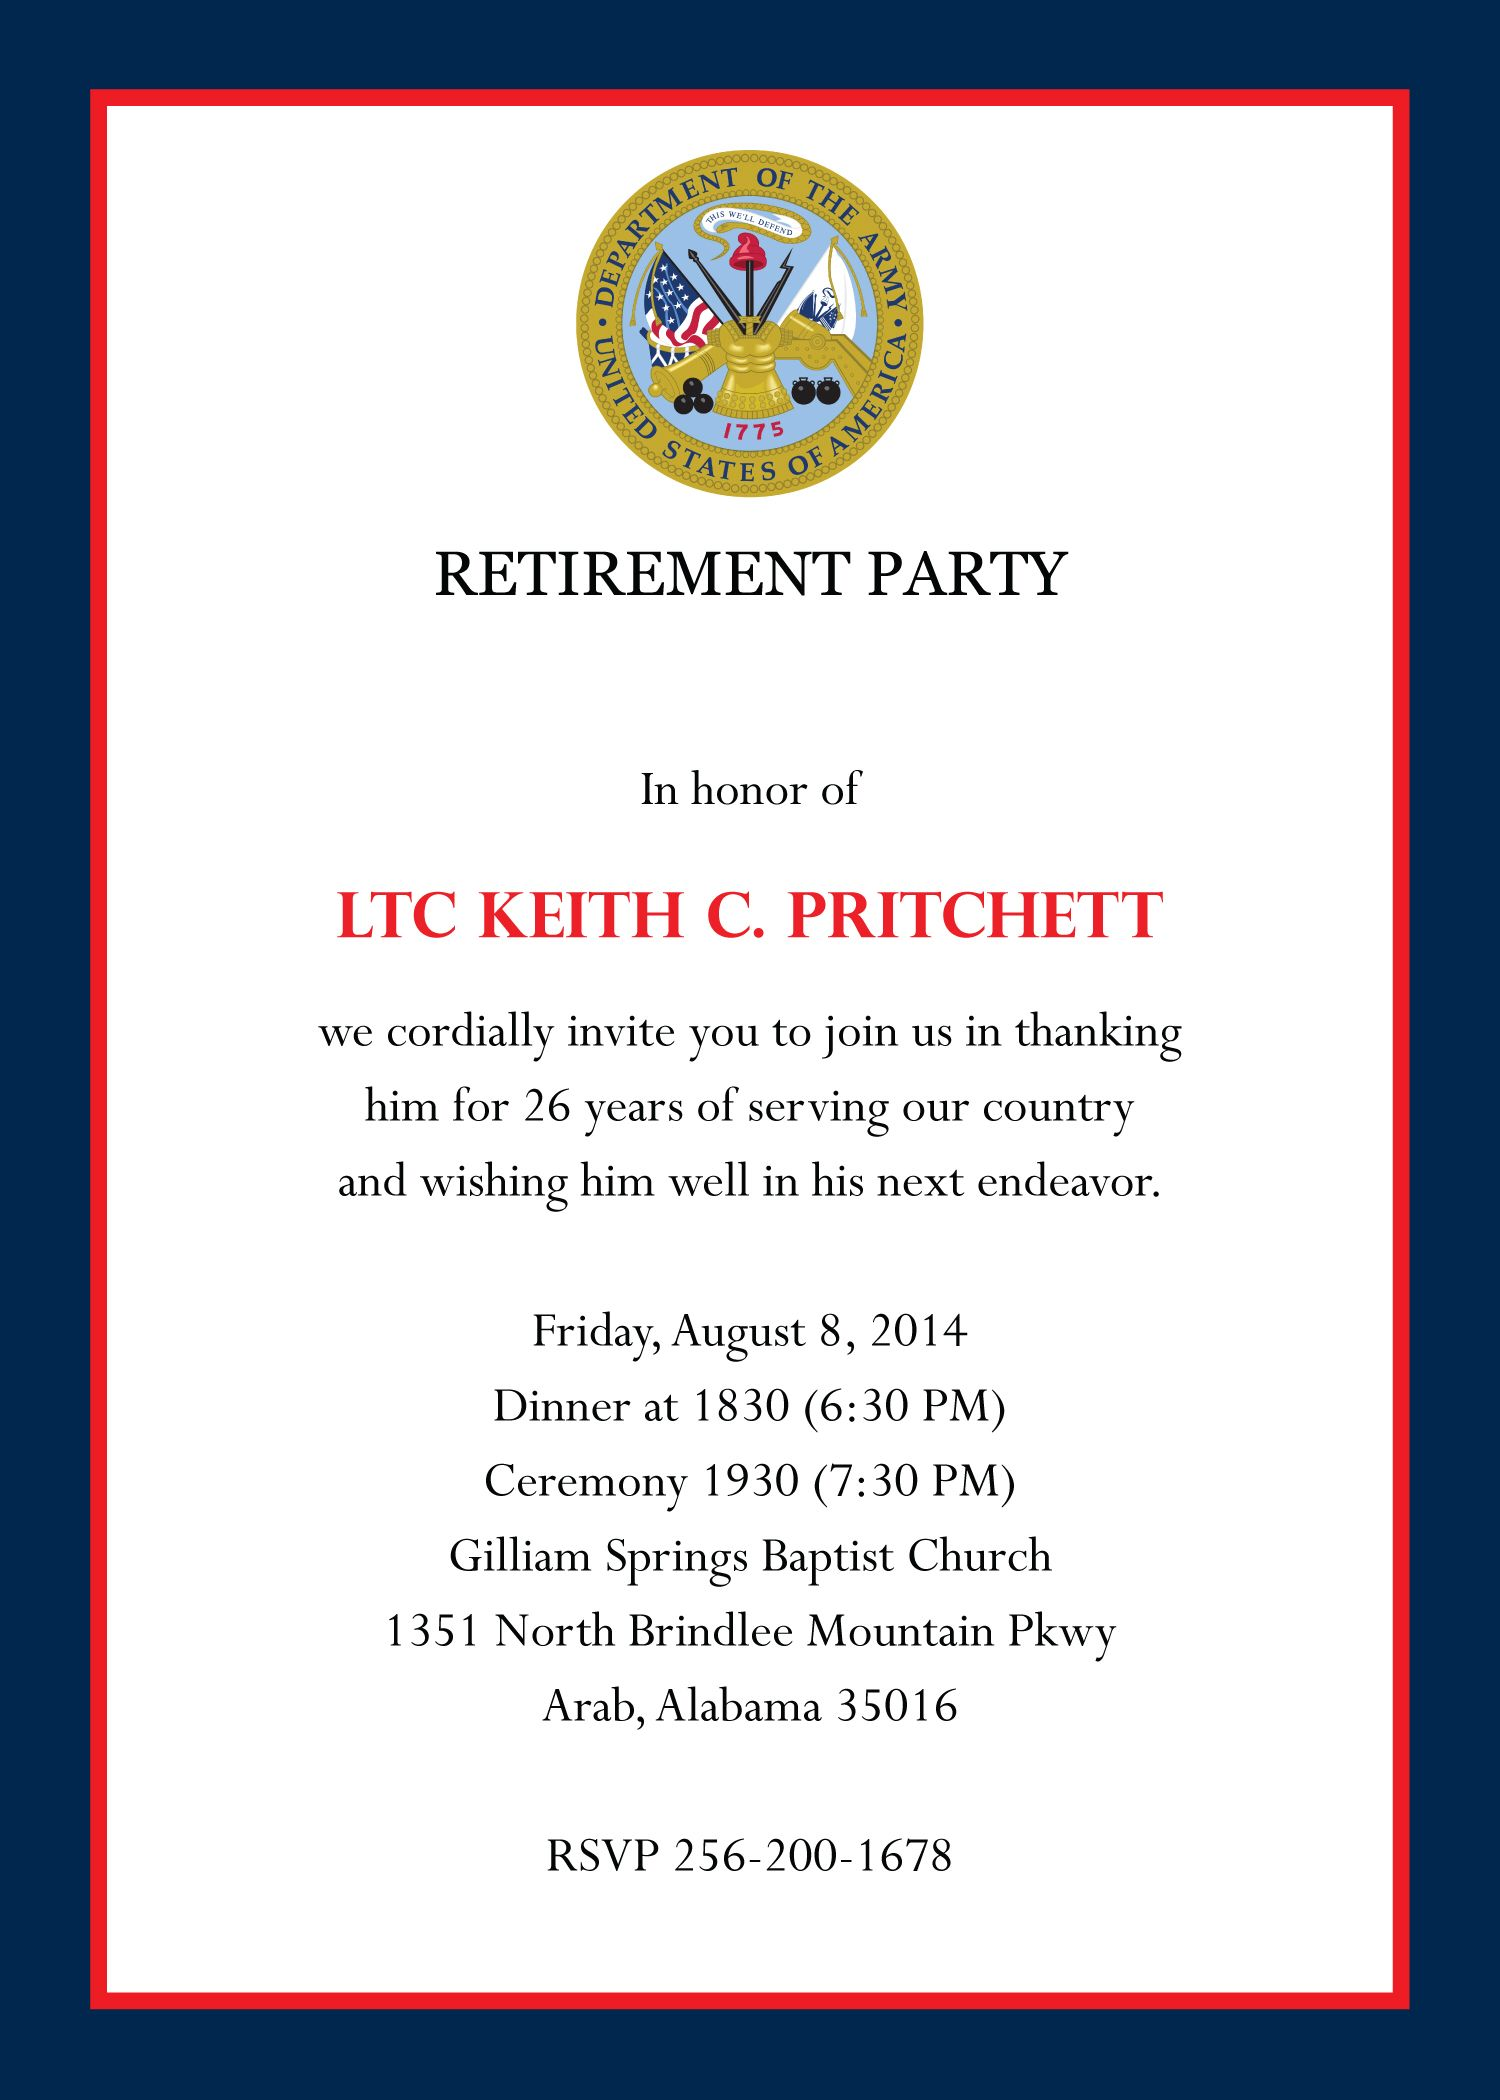 My husband's invitations for his Military Retirement Party.